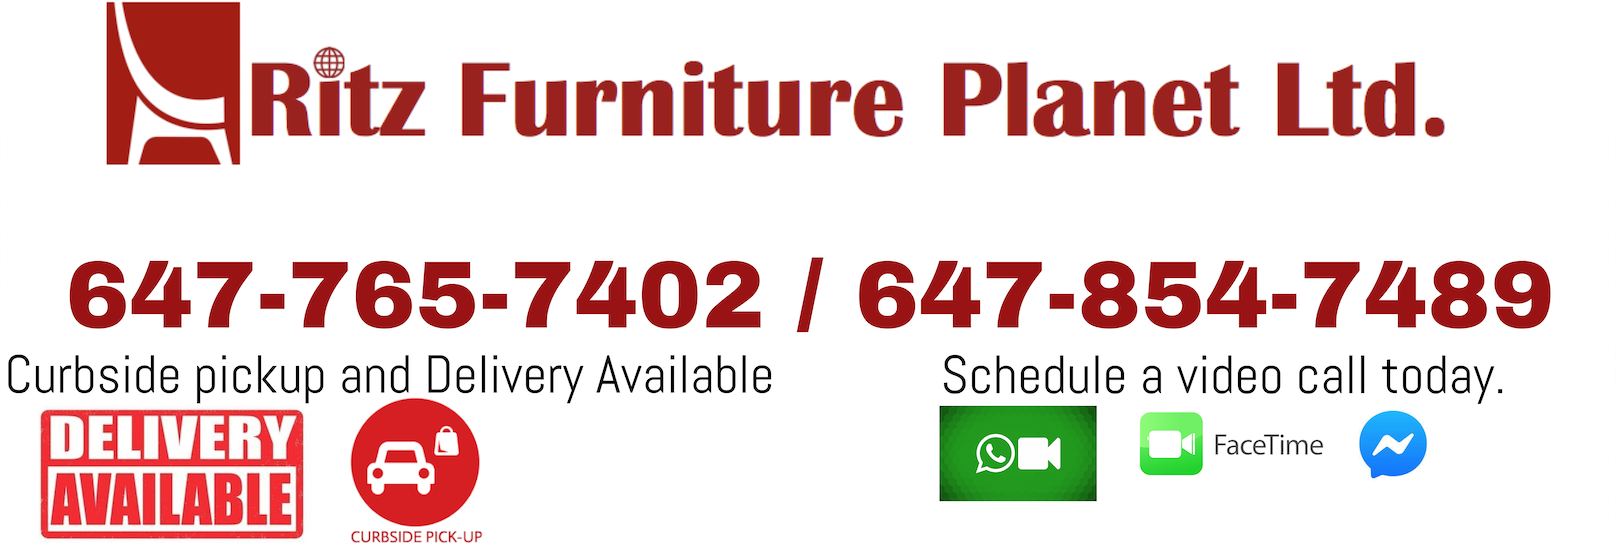 Ritz Furniture Planet LTD.